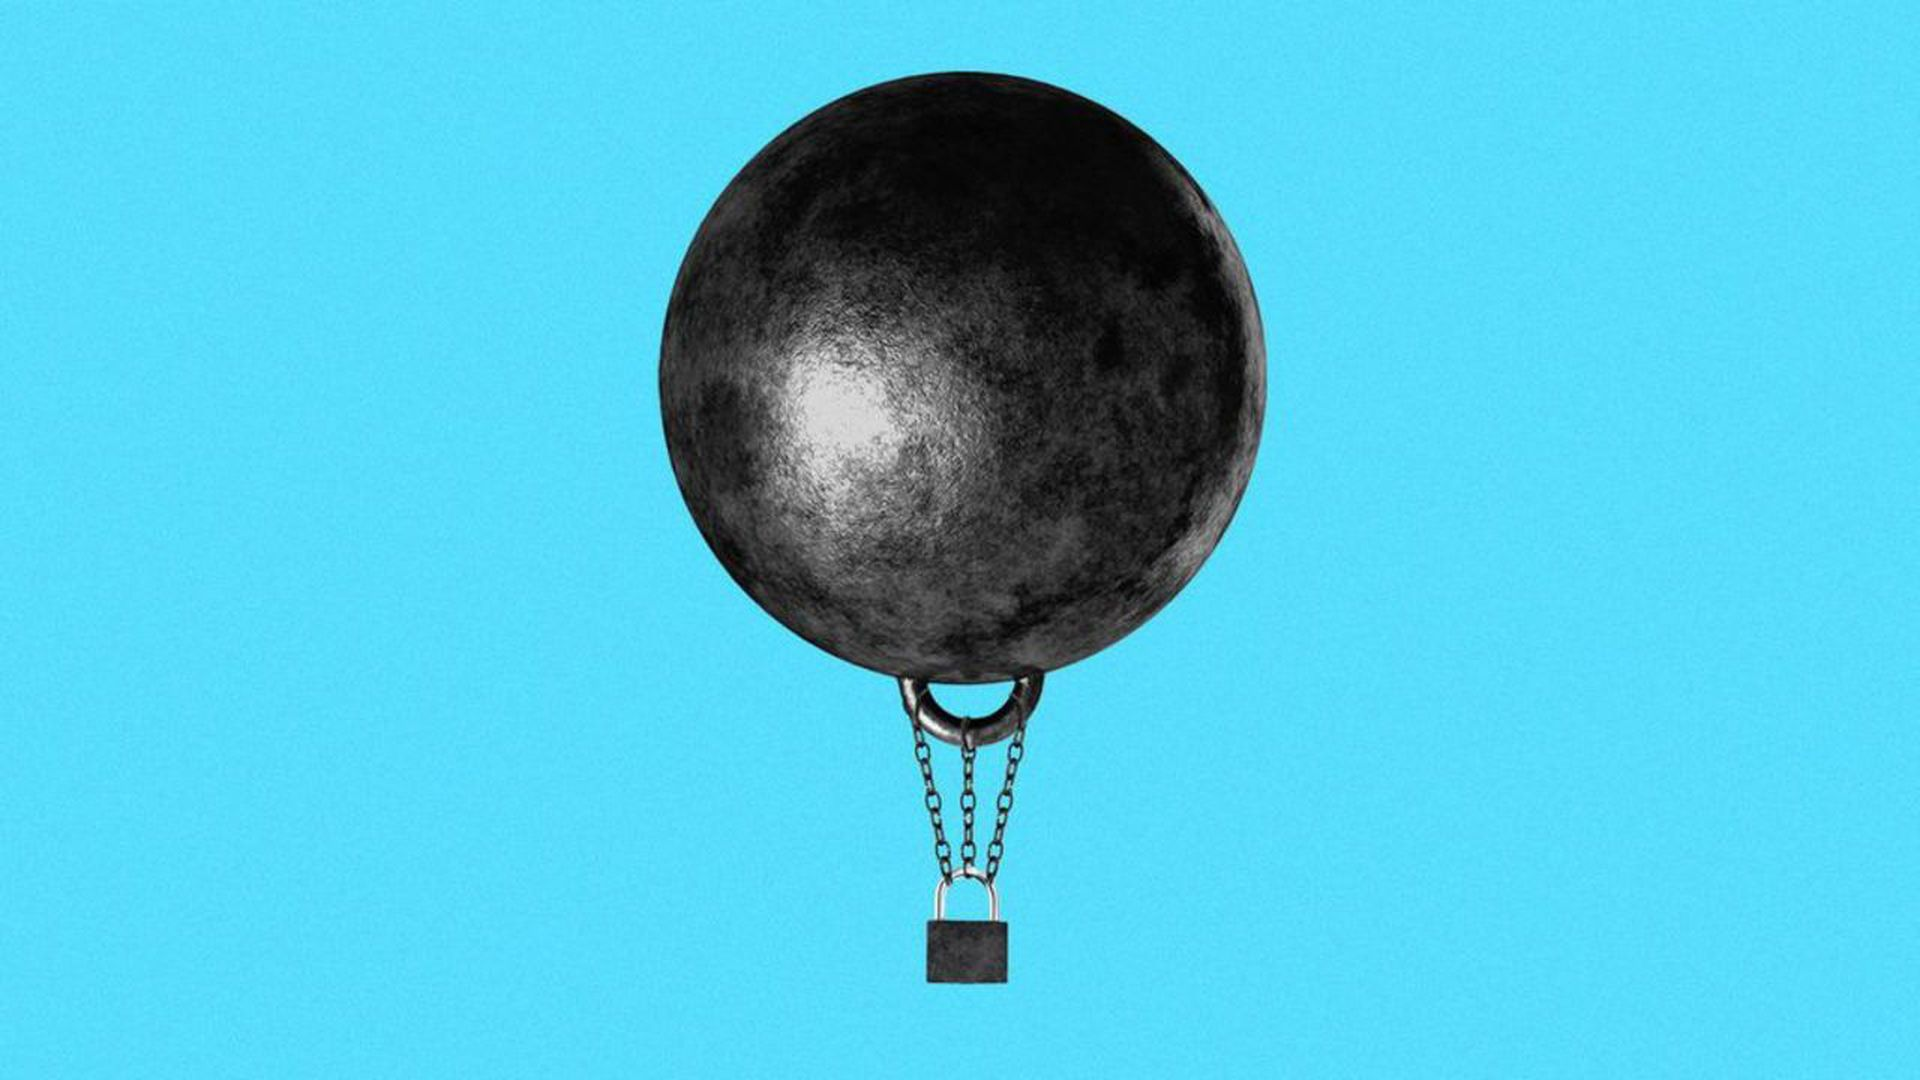 illustration of a ball and chain but in hot air balloon form